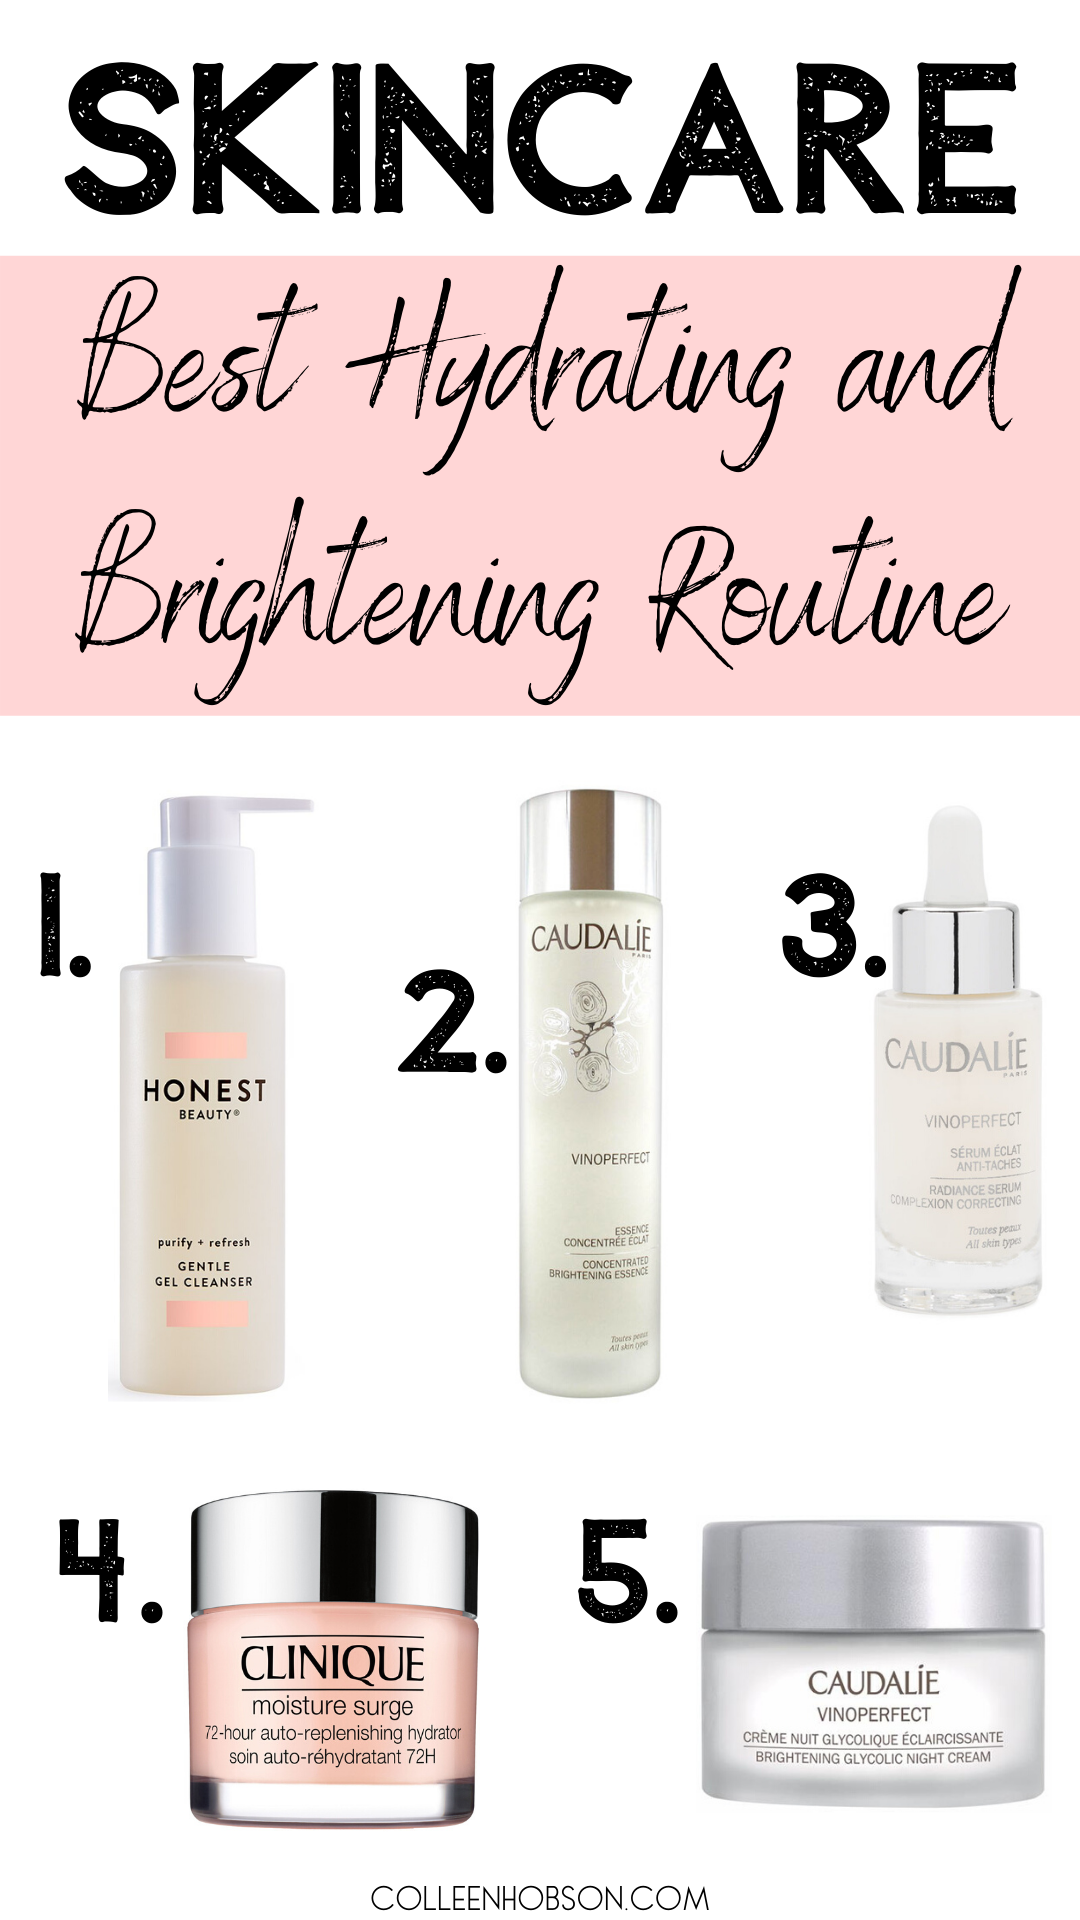 Amazing Skincare Routine For Dry Winter Skin - Colleen Hobson